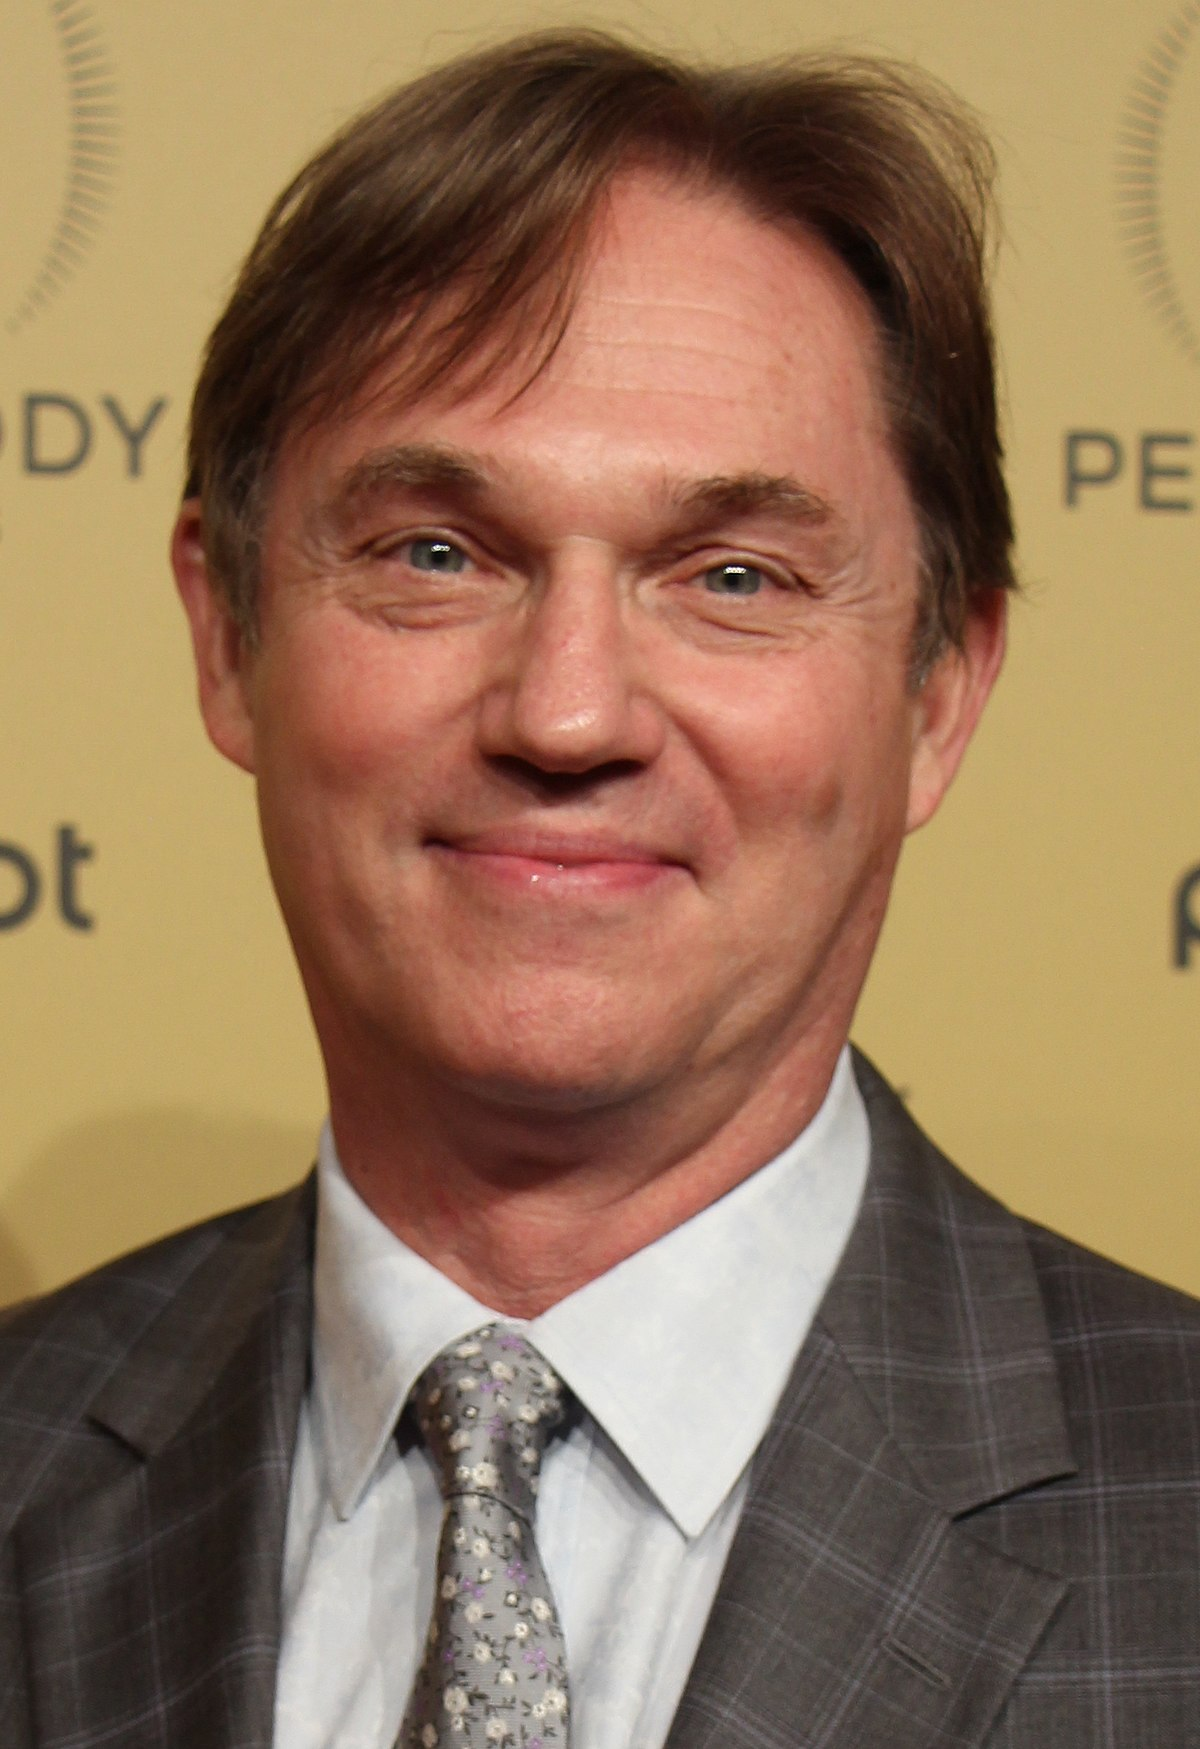 richard thomas (actor) - wikipedia